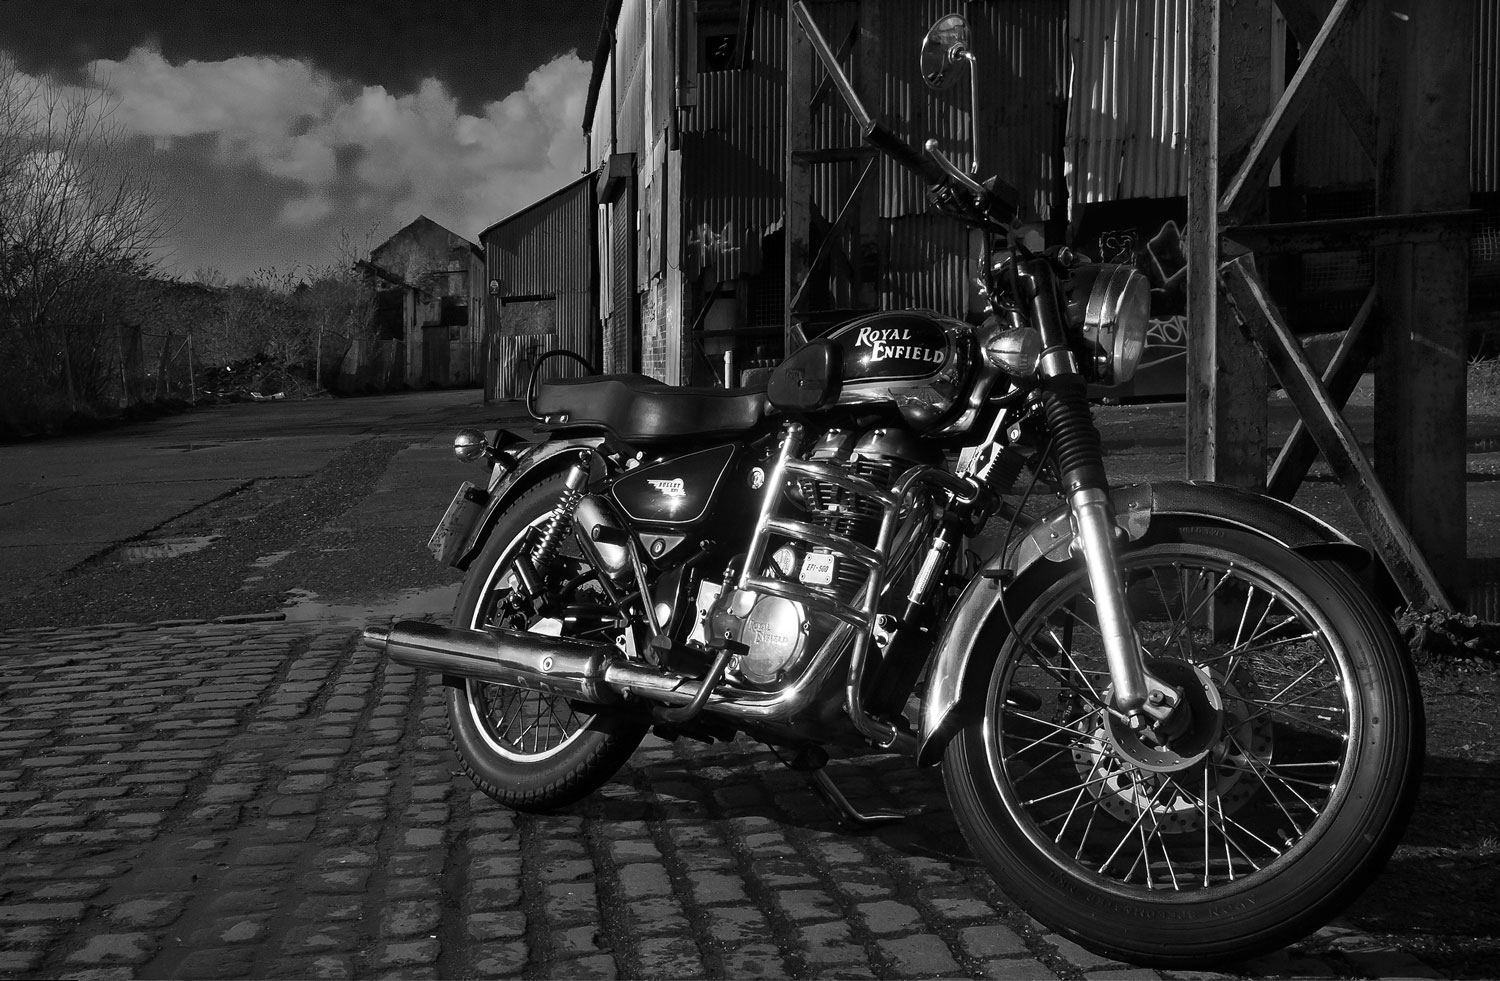 3d Wallpaper Mobile9 Download Download Royal Enfield Images Wallpapers Gallery